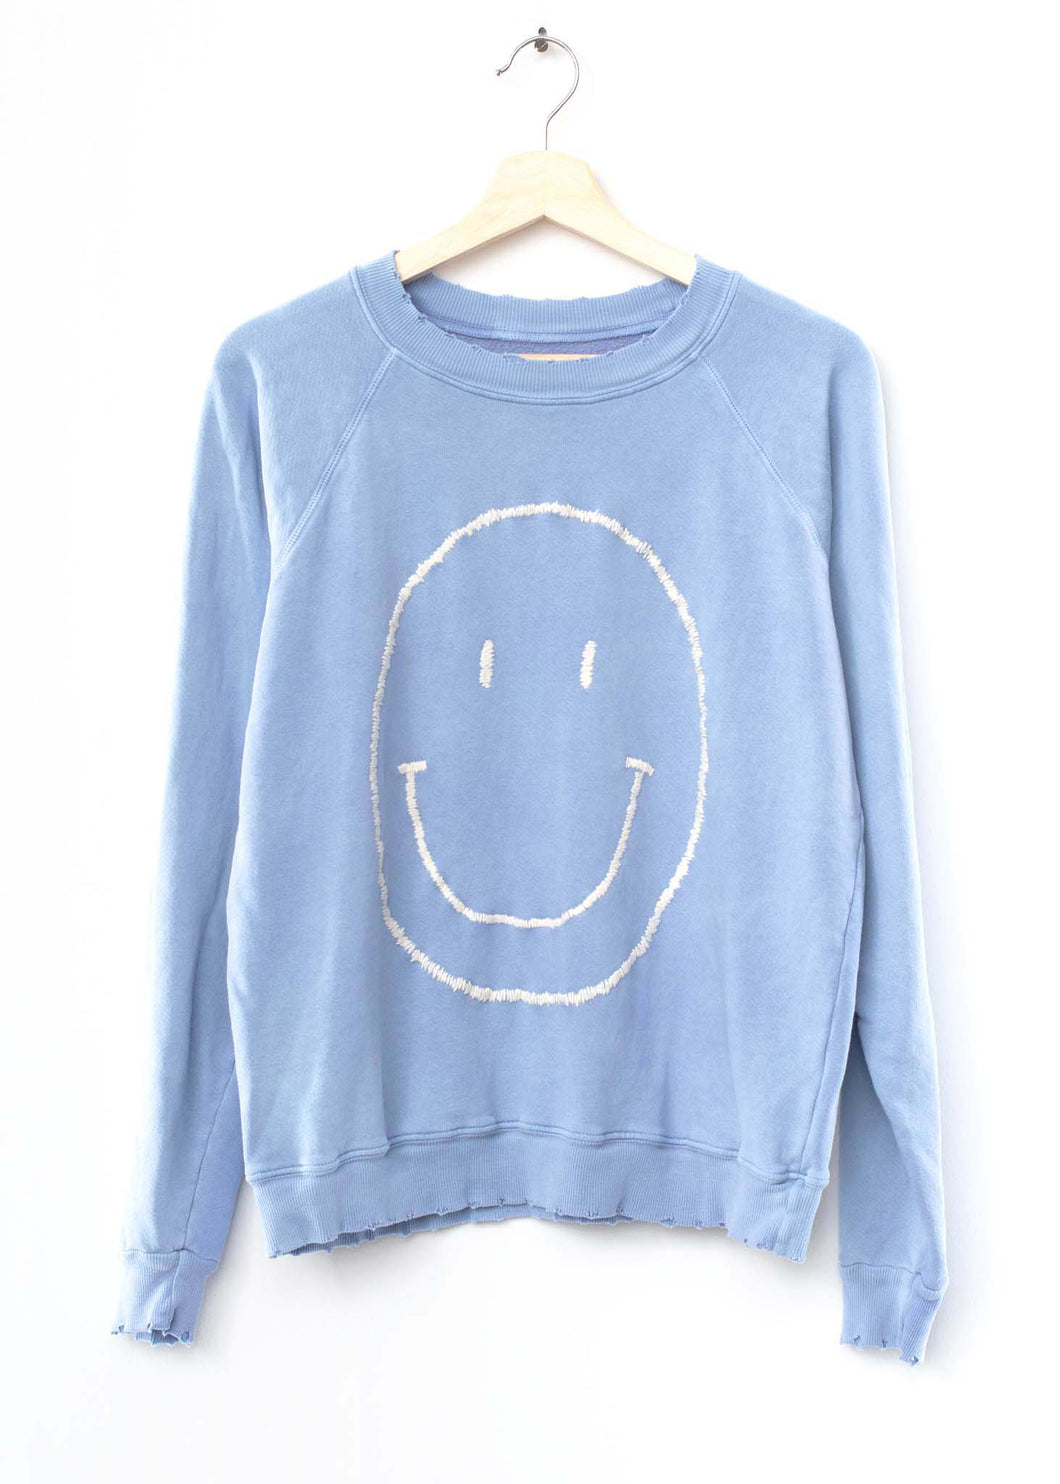 Big Smiley Face Sweatshirt - Blue